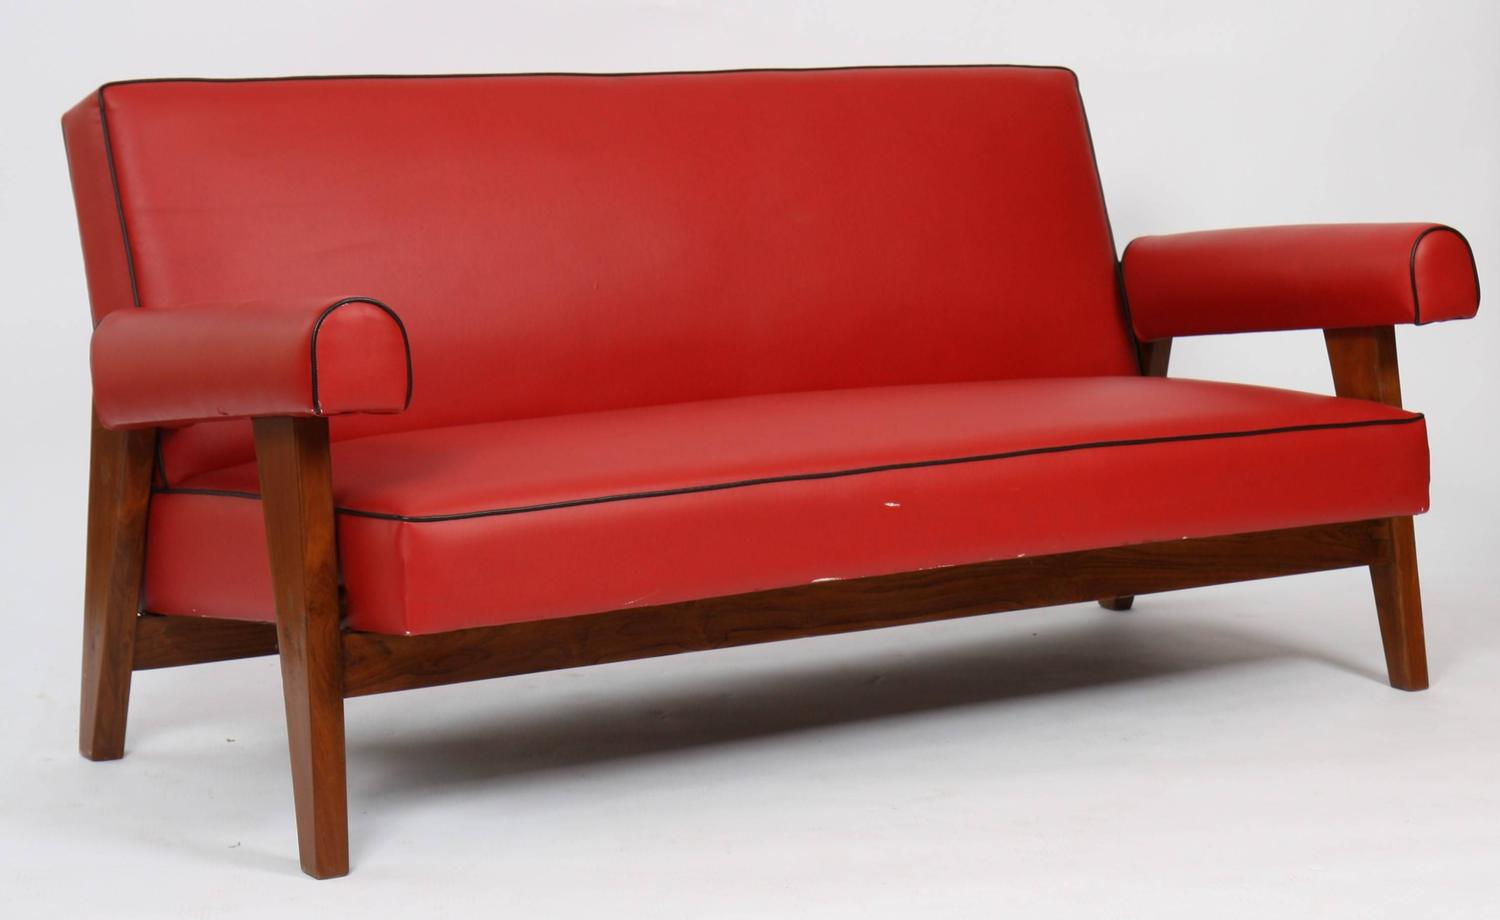 Pierre Jeanneret Living Room Consisting of a Sofa and Two Armchairs ...